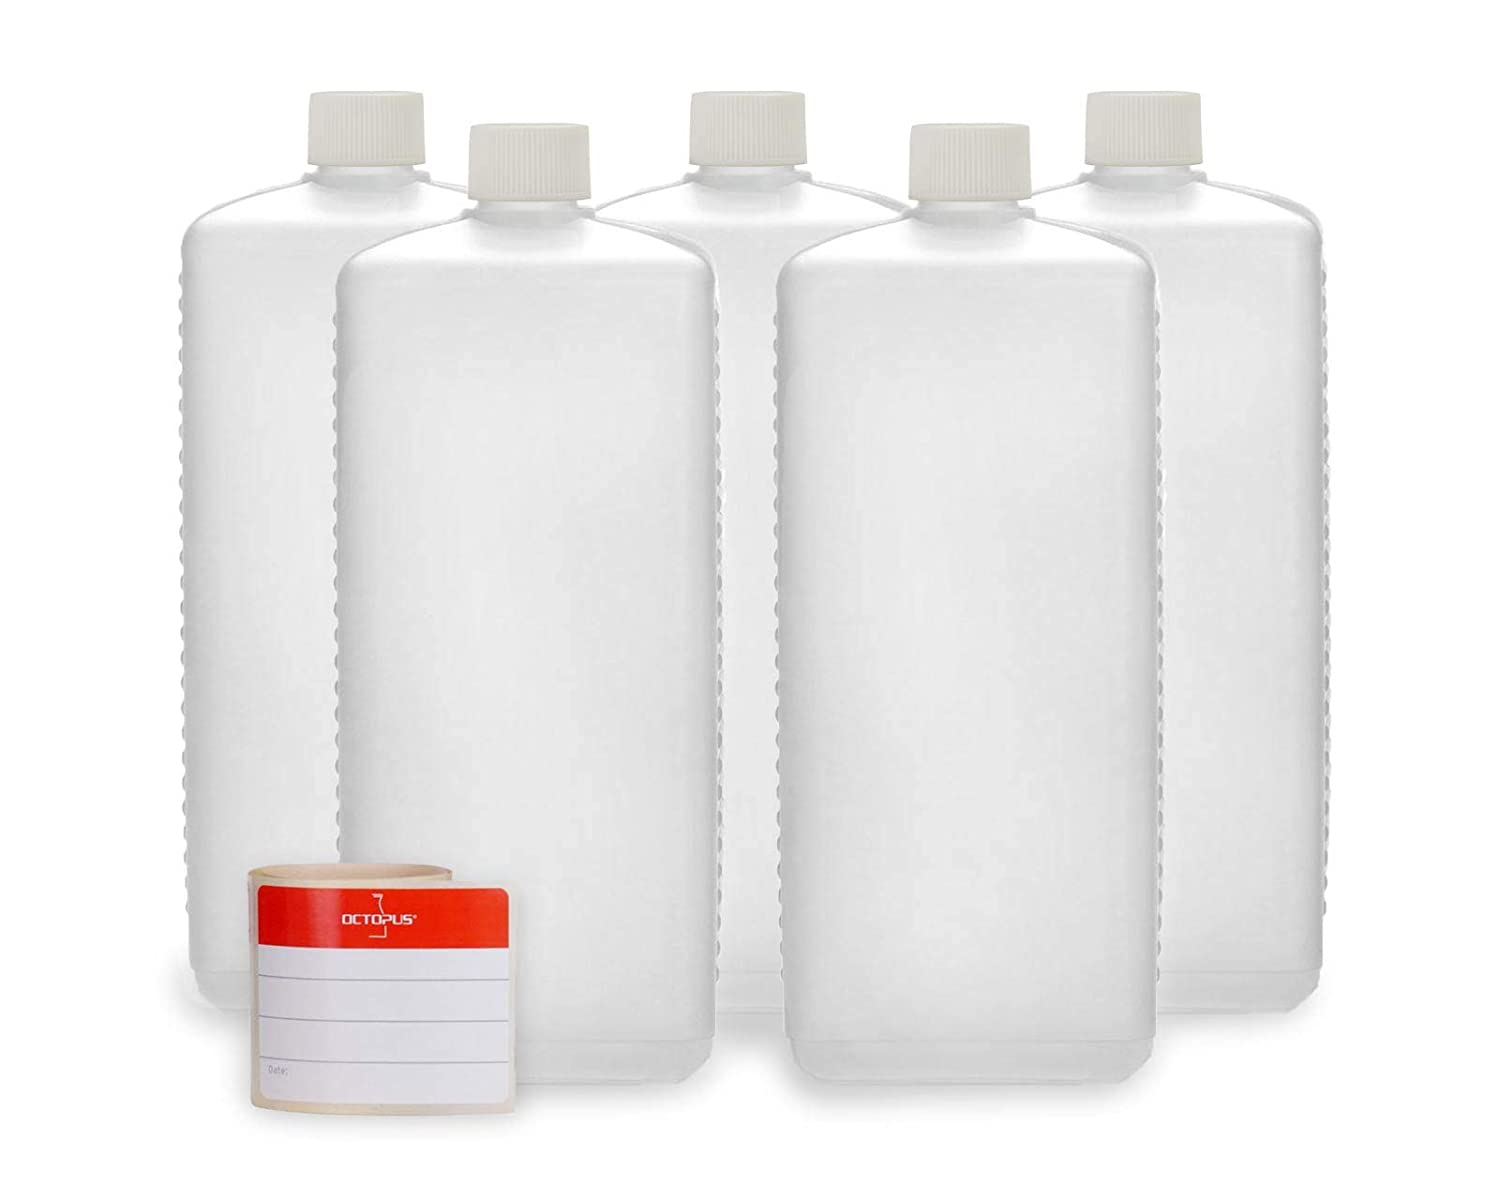 5 x 1000 ml Octopus plastic bottles, HDPE plastic bottles with white screw caps, empty bottles with white screw caps, square bottles incl. 5 labels Octopus Concept GmbH PLF1000-S1-W